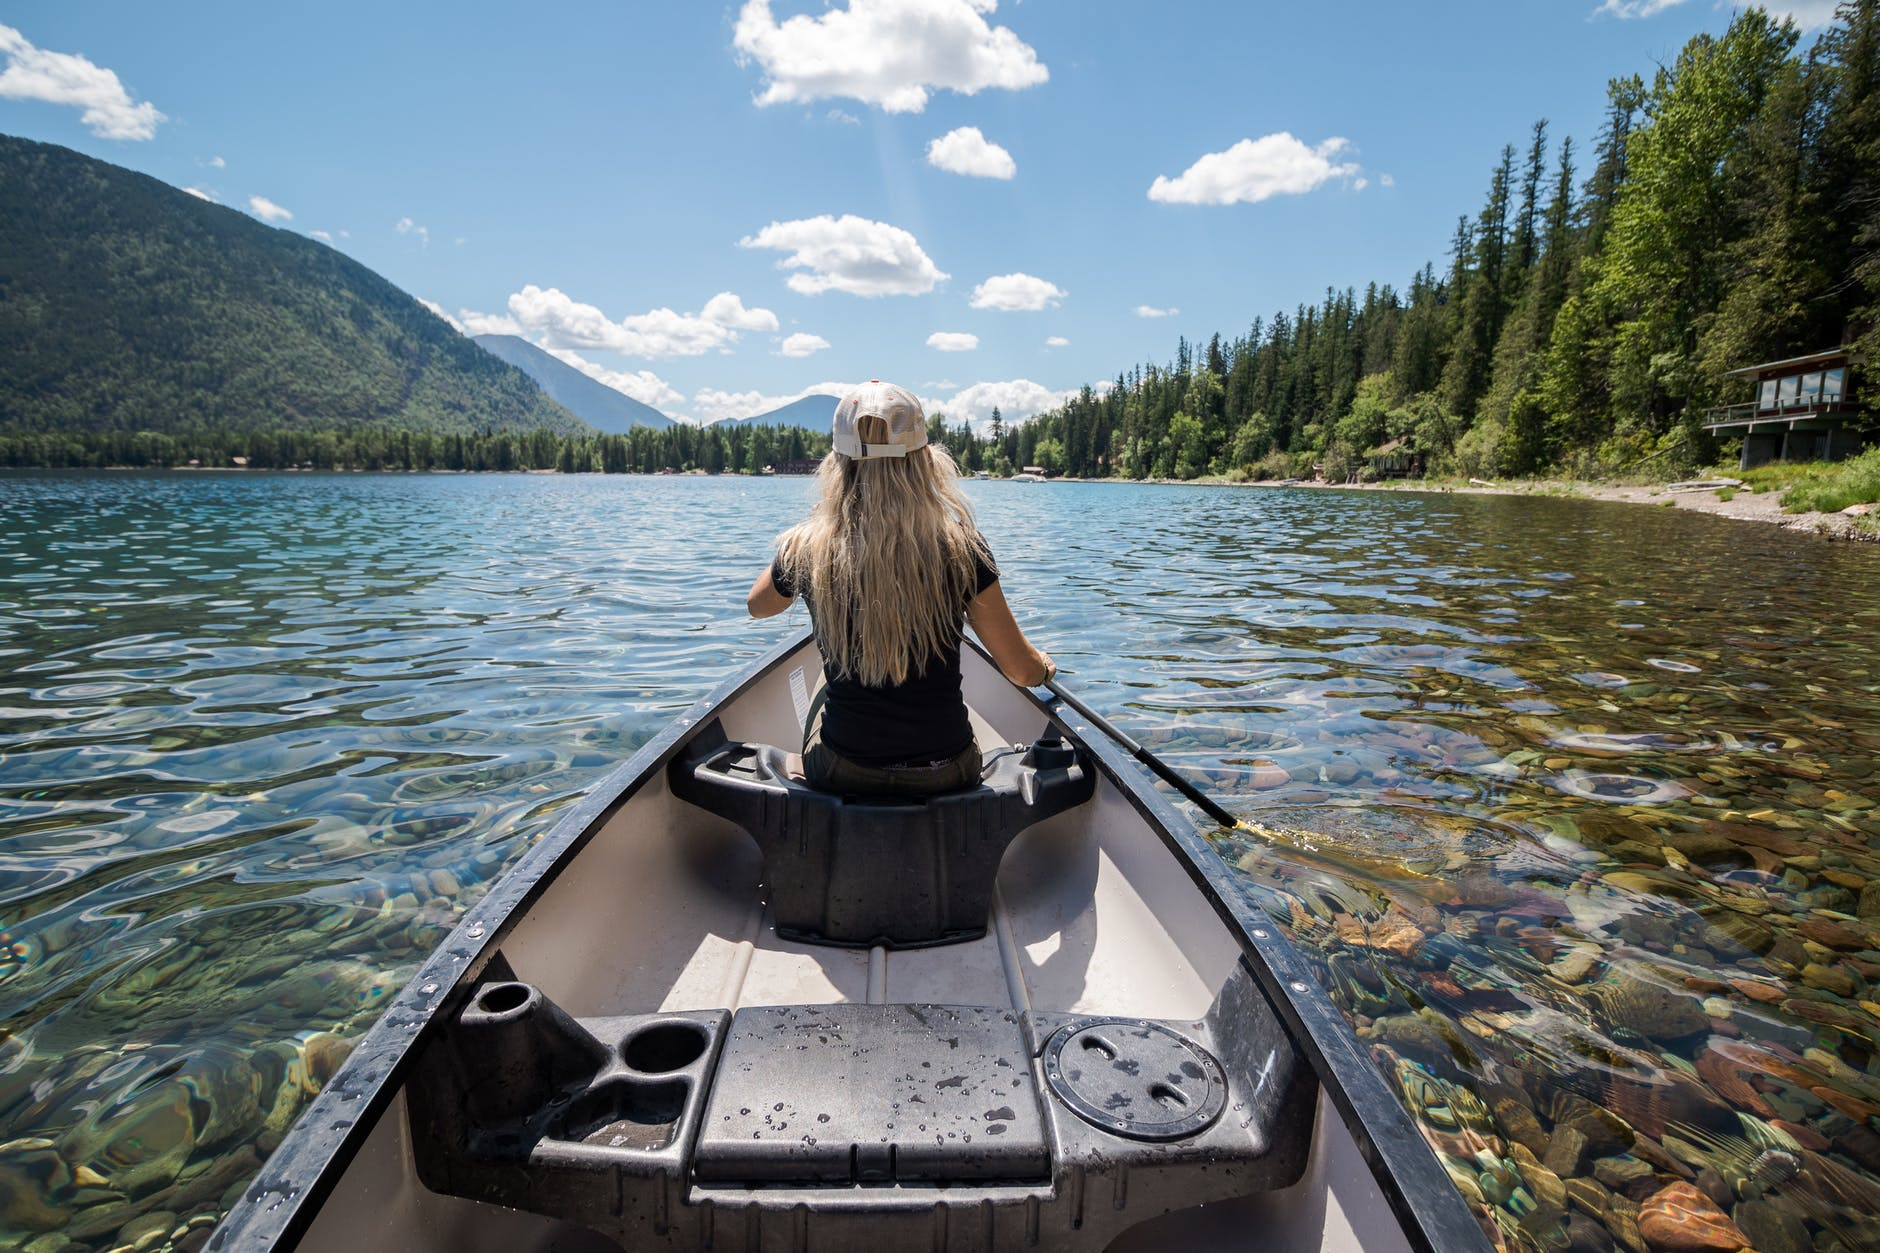 anonymous young lady paddling boat in lake during trip in mountains